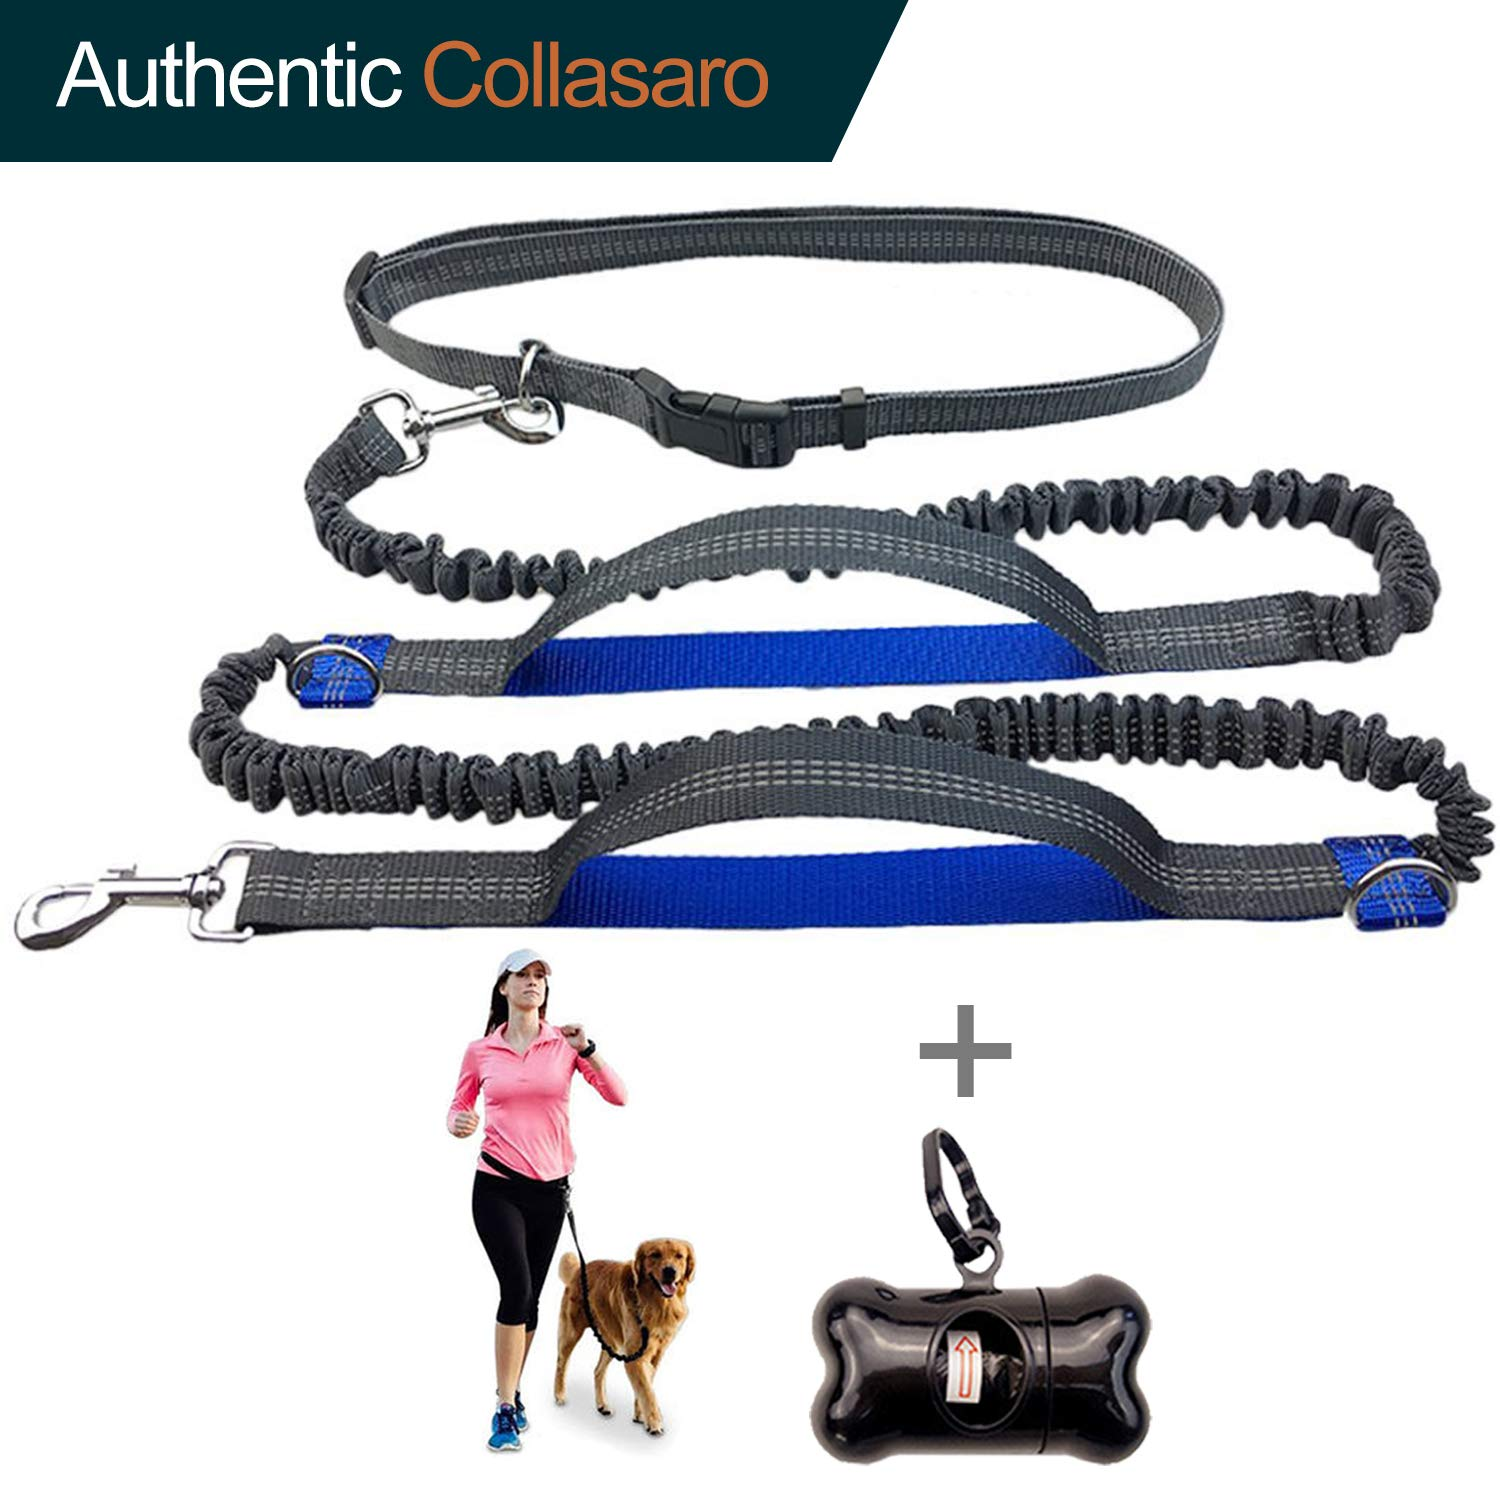 Durable Hands Free Dog Leash for Running, Walking, Hiking, with Adjustable Waist Belt (Fits up to 47 waist) and Shock Absorbing Bungee Collasaro